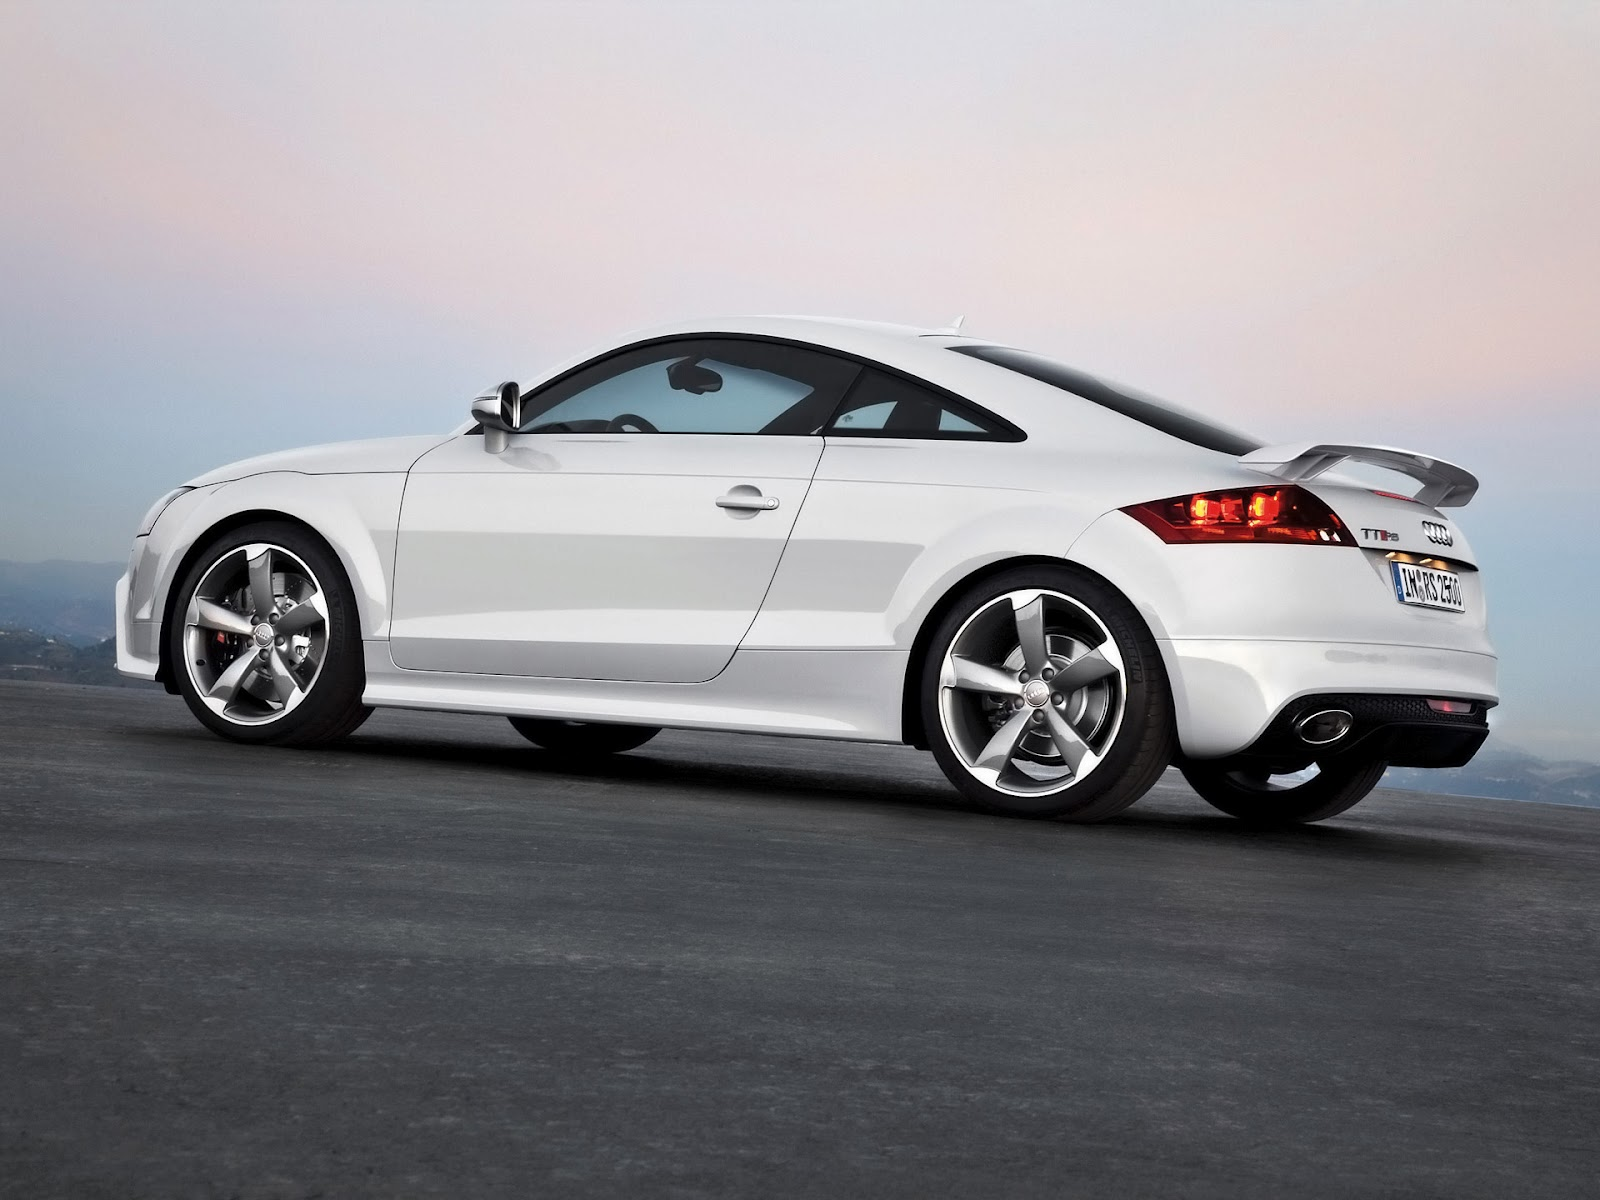 2012 audi tt rs reviews requirements and photos newsautomagz. Black Bedroom Furniture Sets. Home Design Ideas